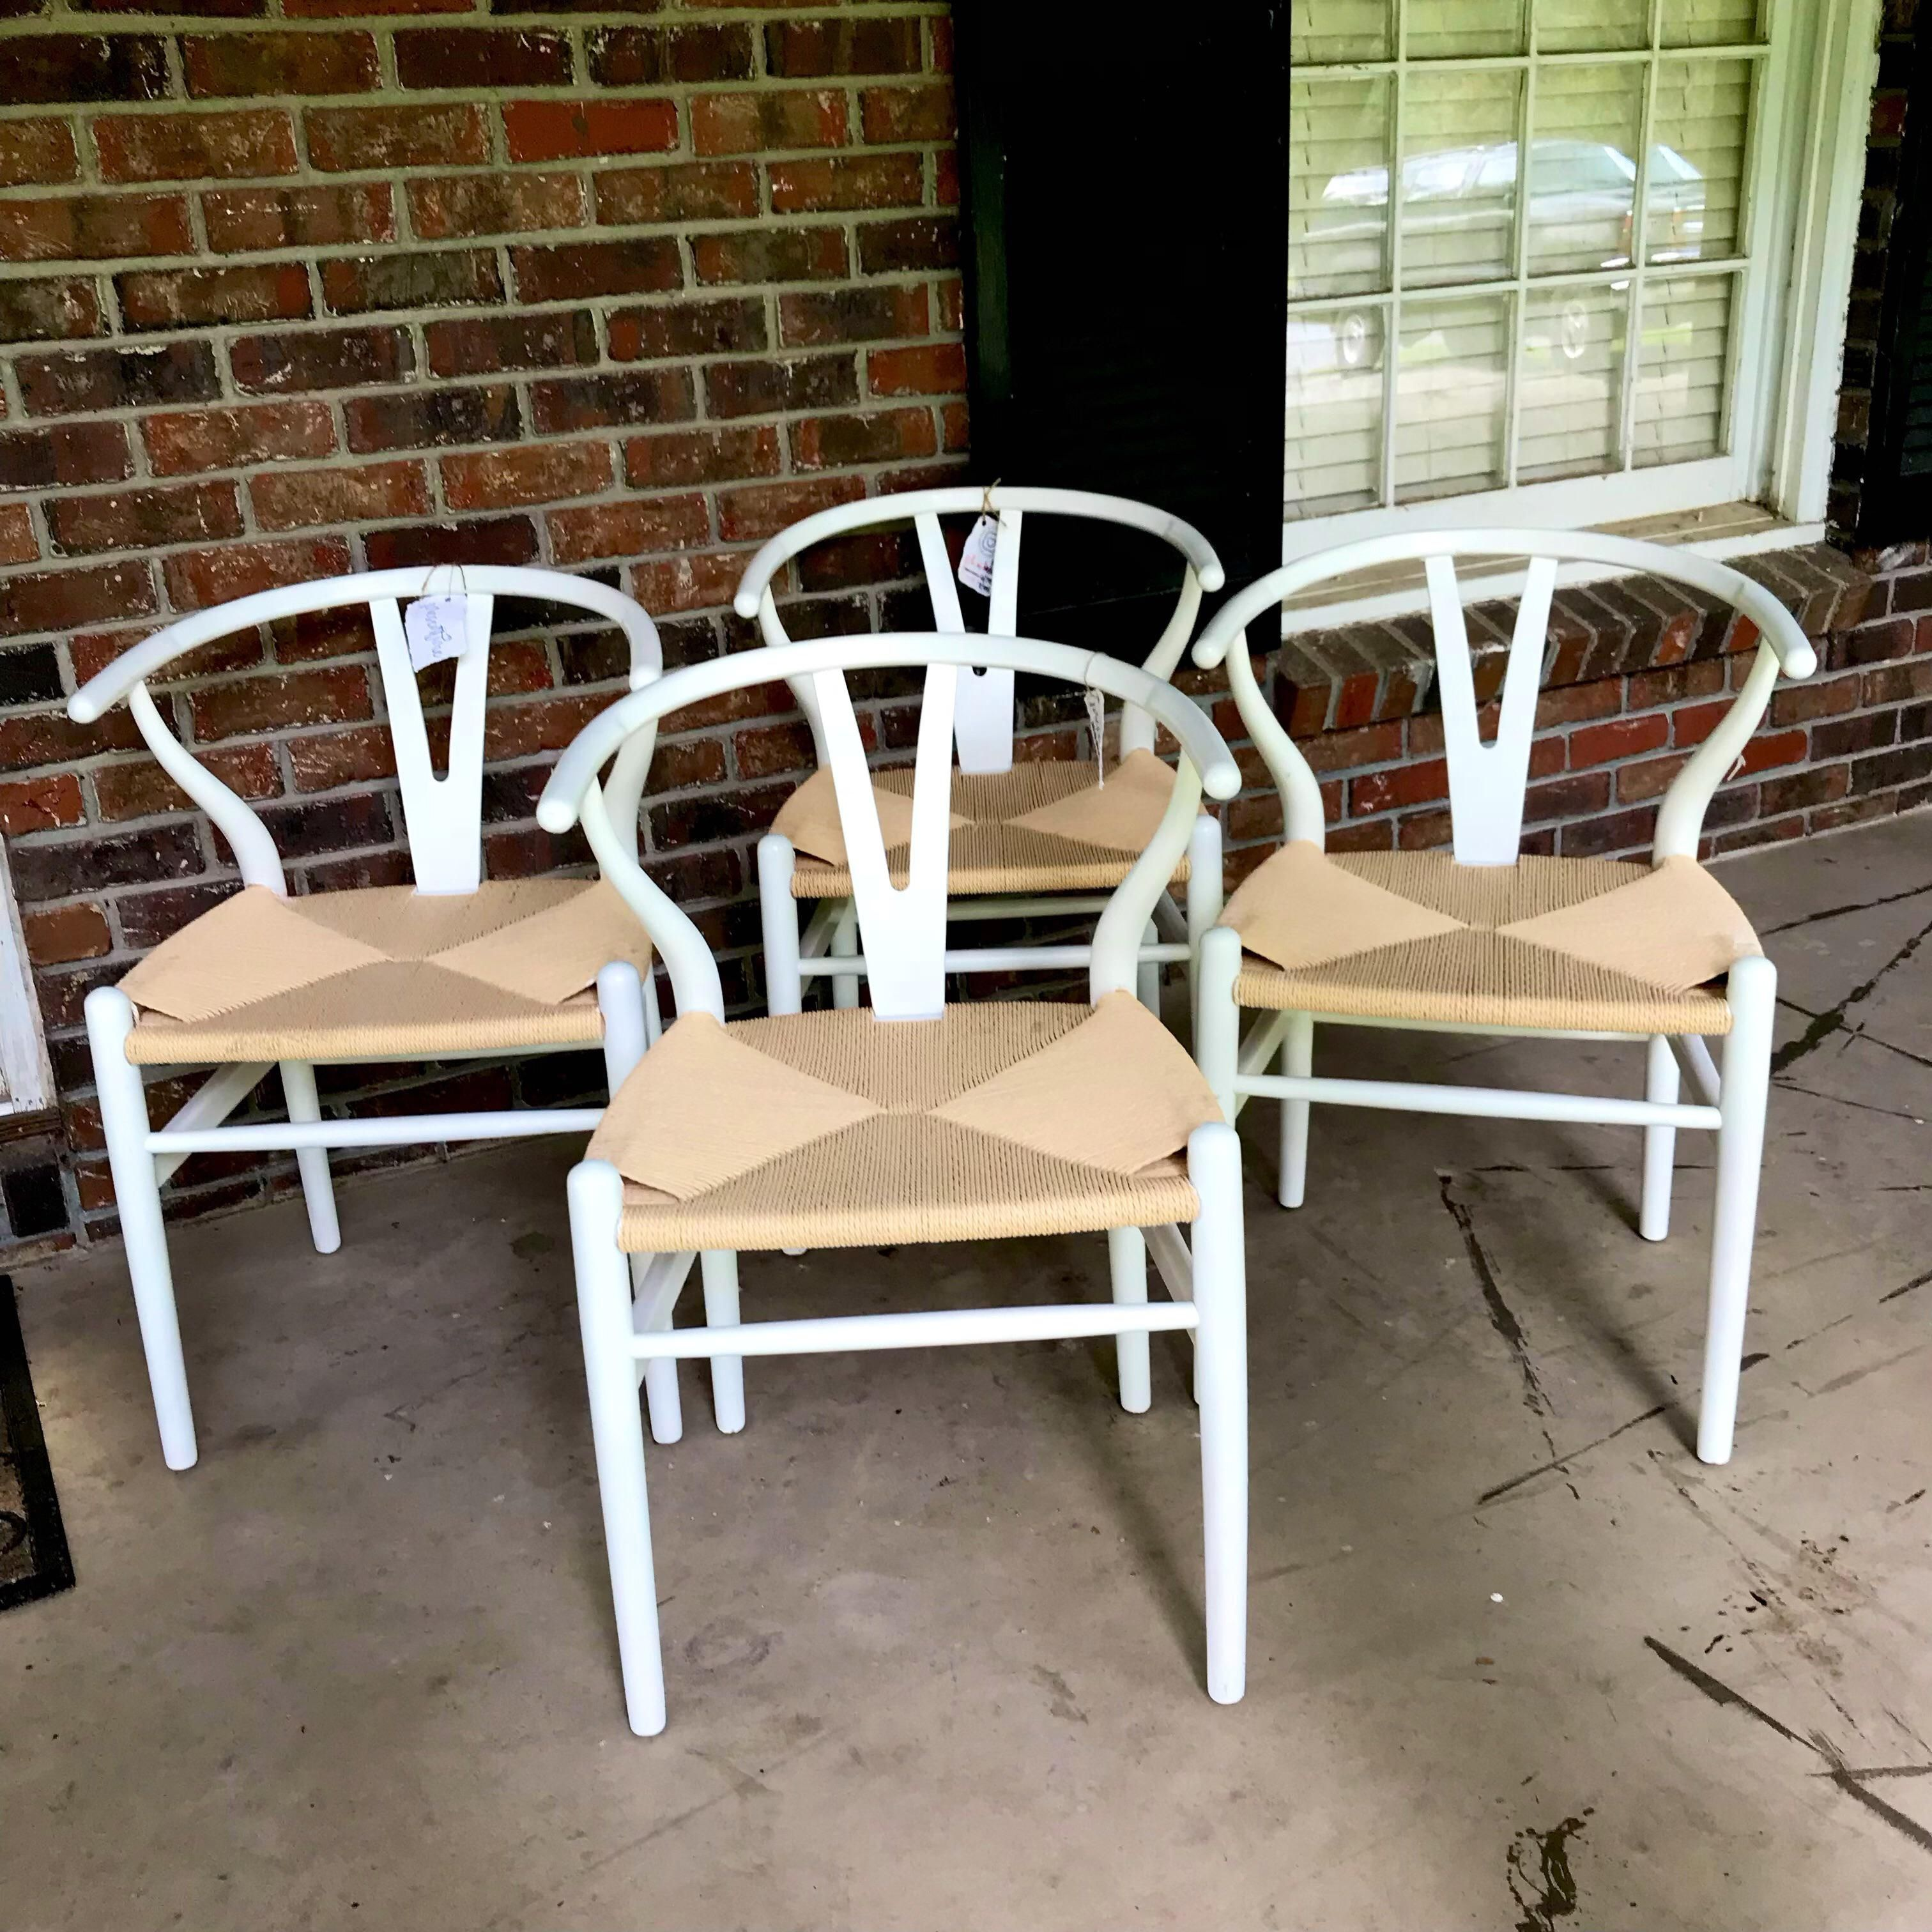 1970s Vintage White Wishbone Chairs Set of 4 Chair